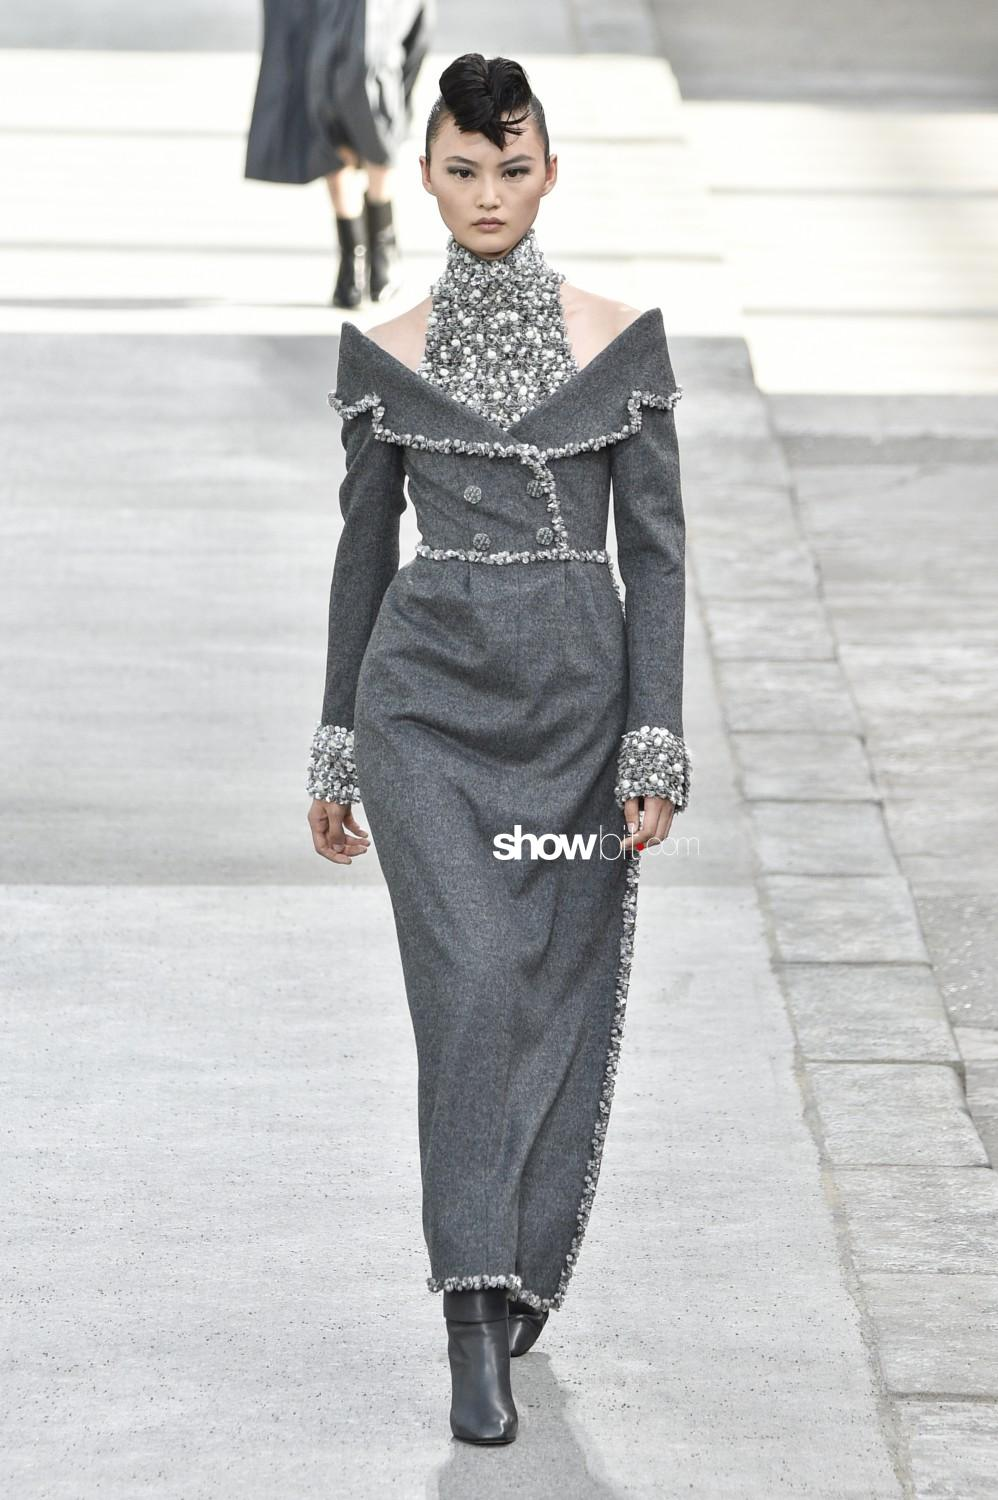 Chanel Haute Couture Fall Winter 2018 Paris